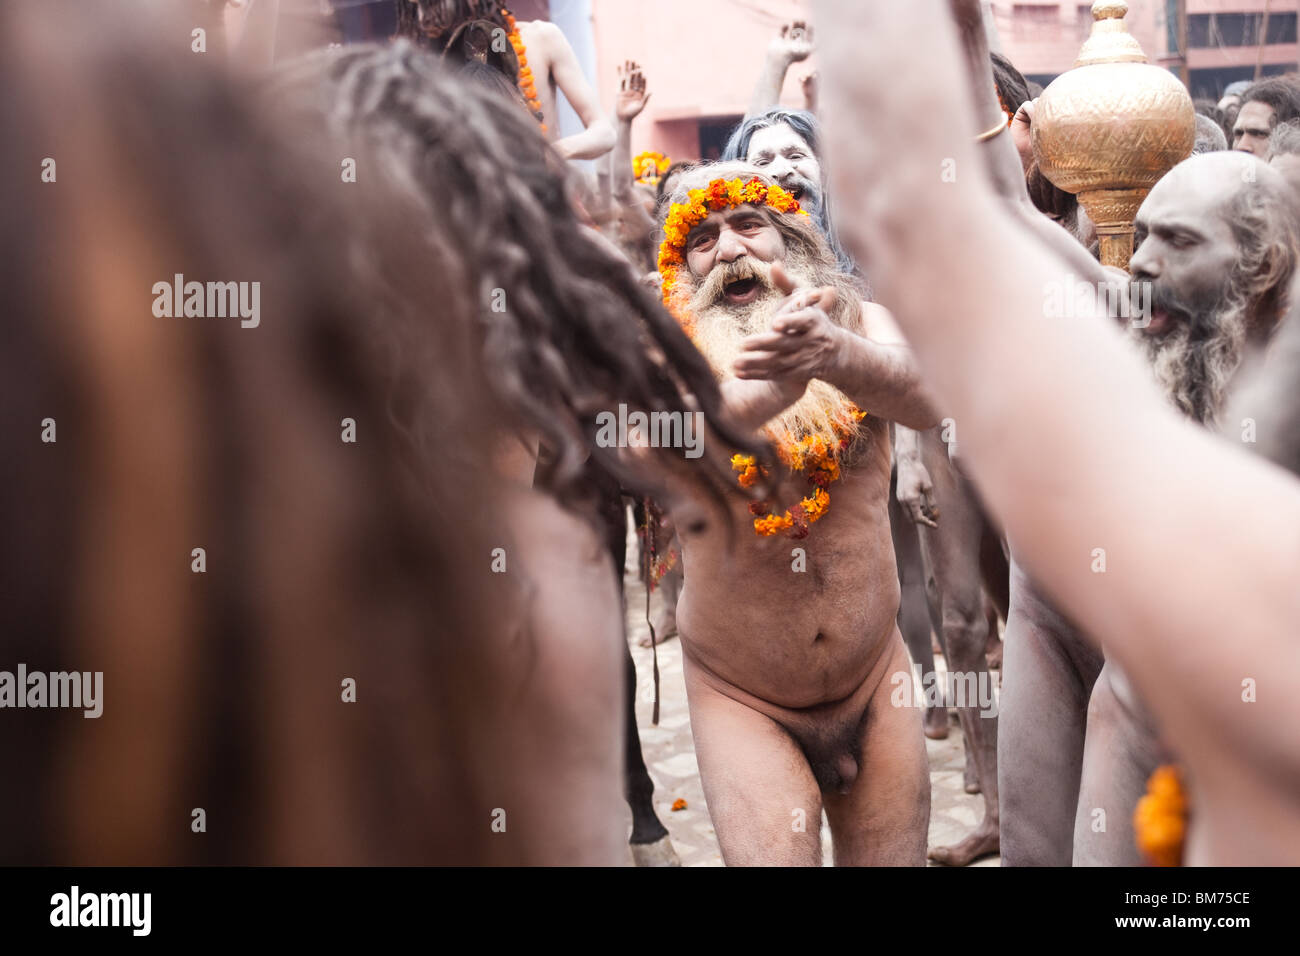 Naga Sadus during the Haridwar Kumbh mela 2010. India. - Stock Image